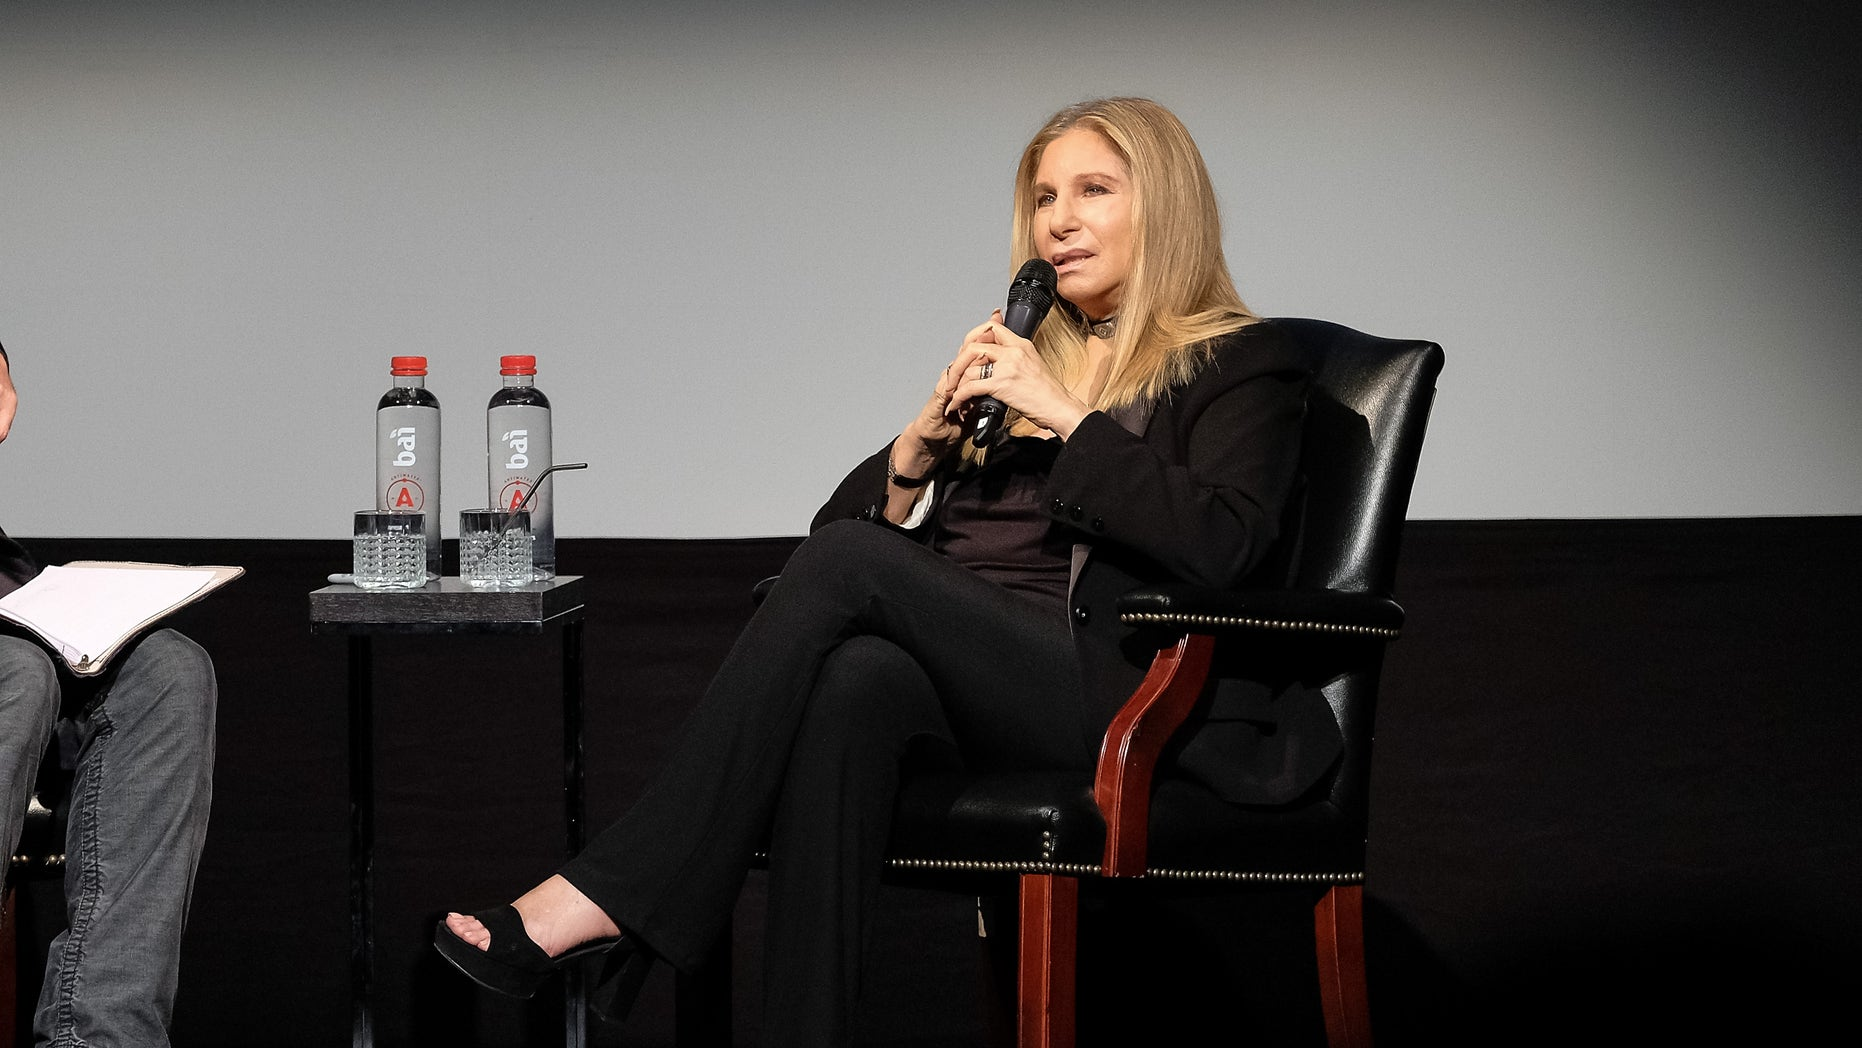 The animal-rights organization urged celebs including Barbra Streisand, Michael B. Jordan and Sarah Paulson to avoid the fast-food chain.